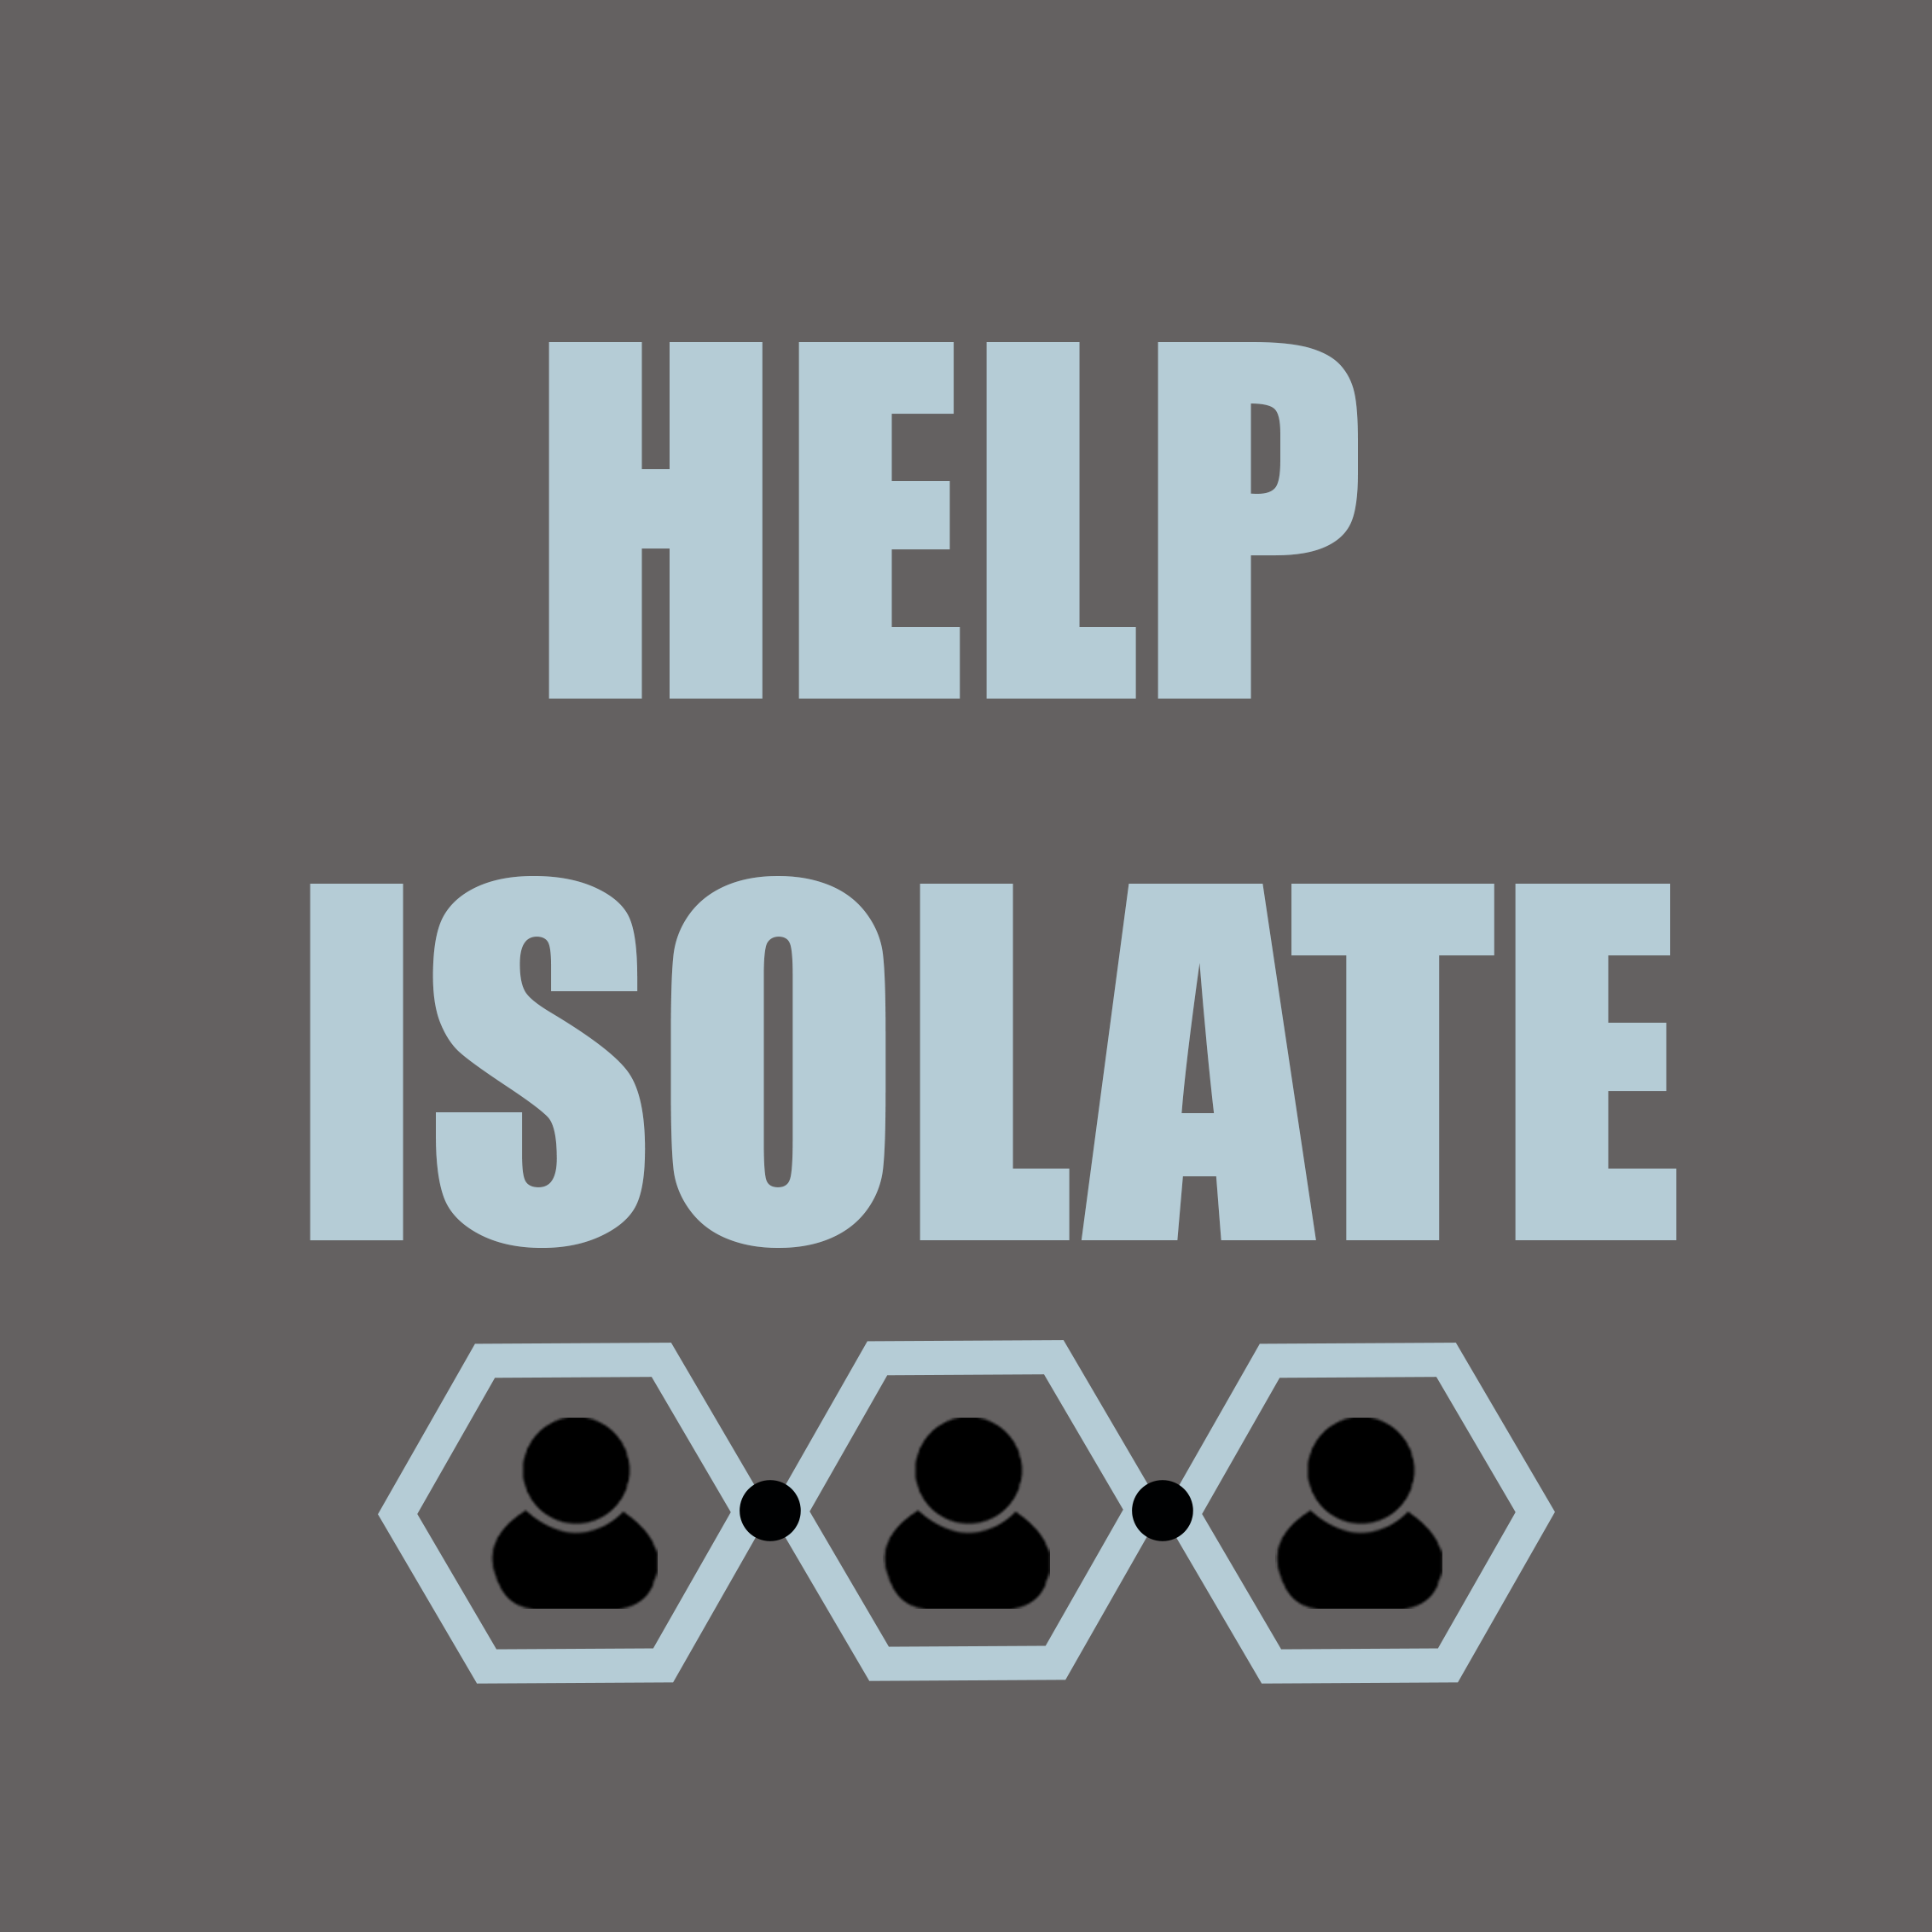 help isolate logo